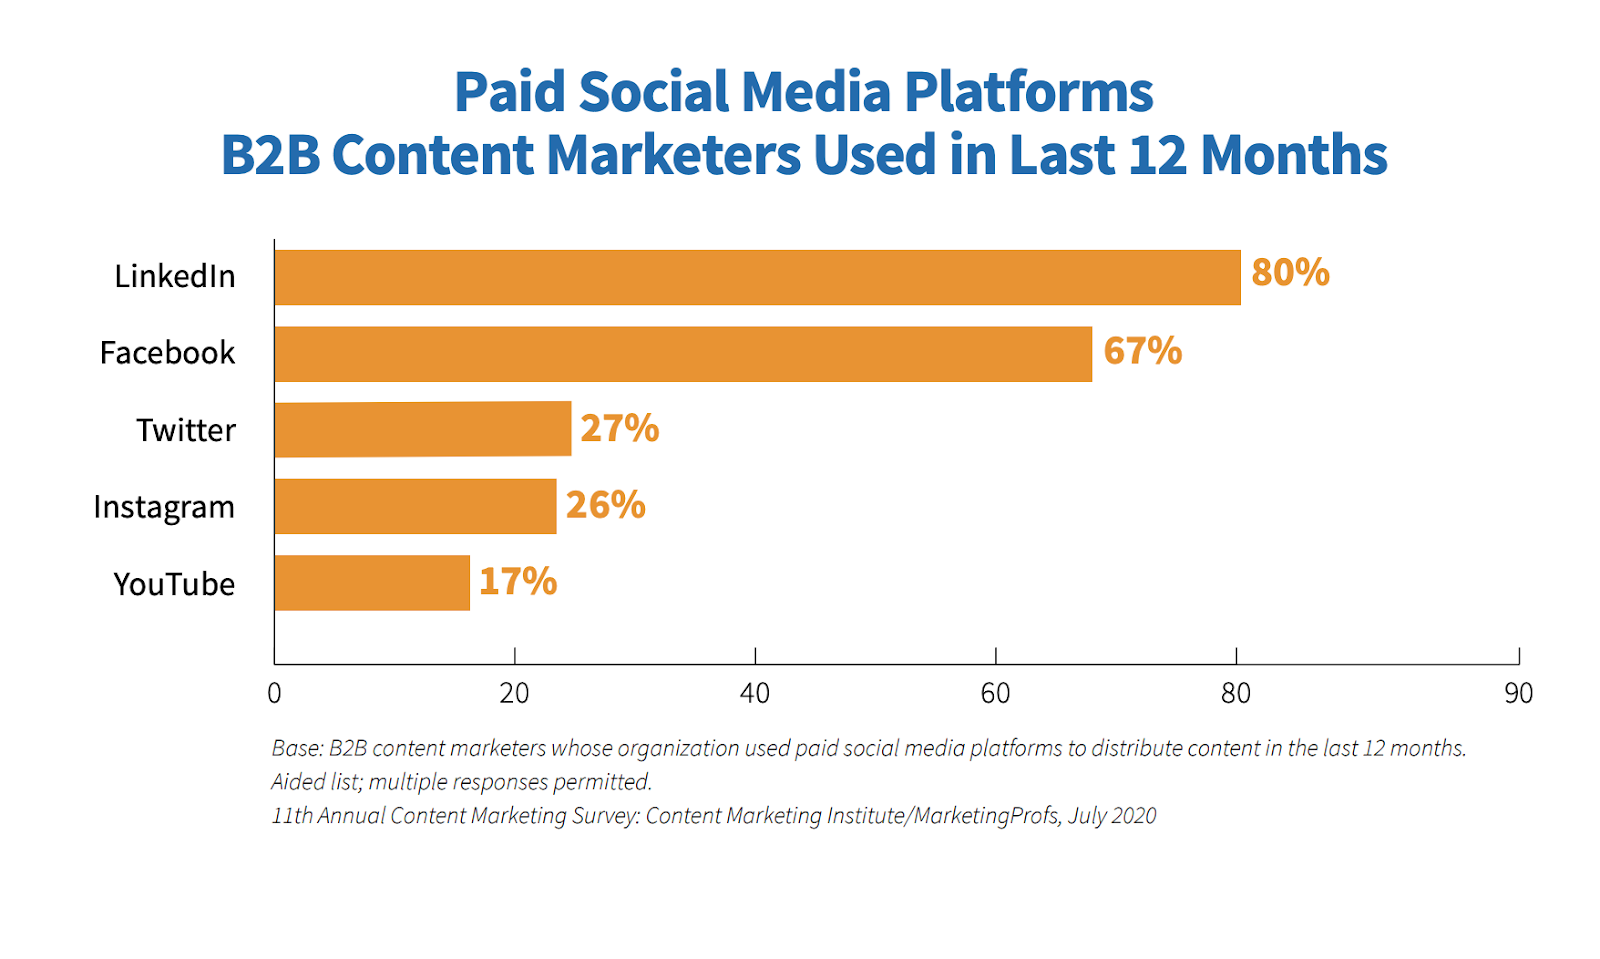 Paid social media platforms B2B content marketers used in last 12 months